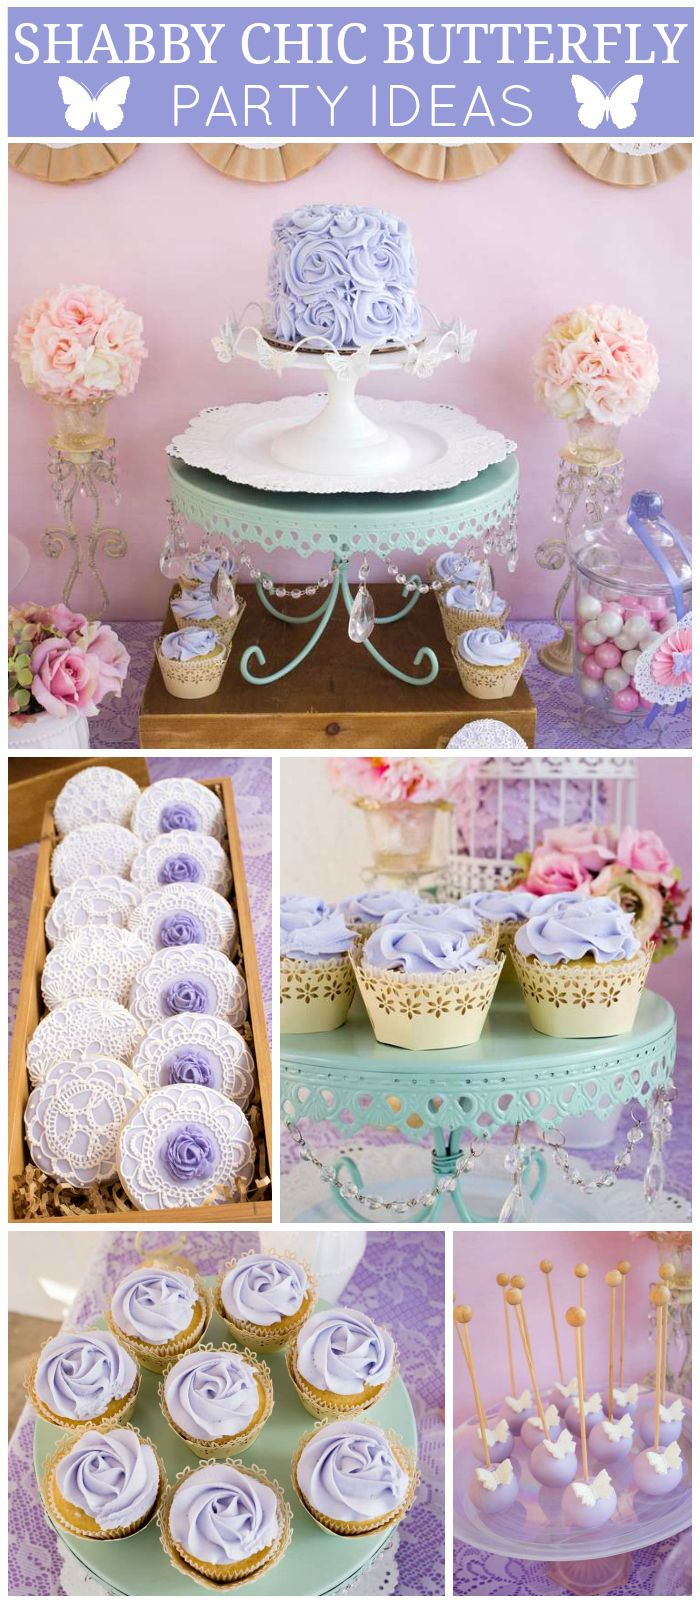 A shabby chic butterfly girl birthday party with lots of lavender and lace and…